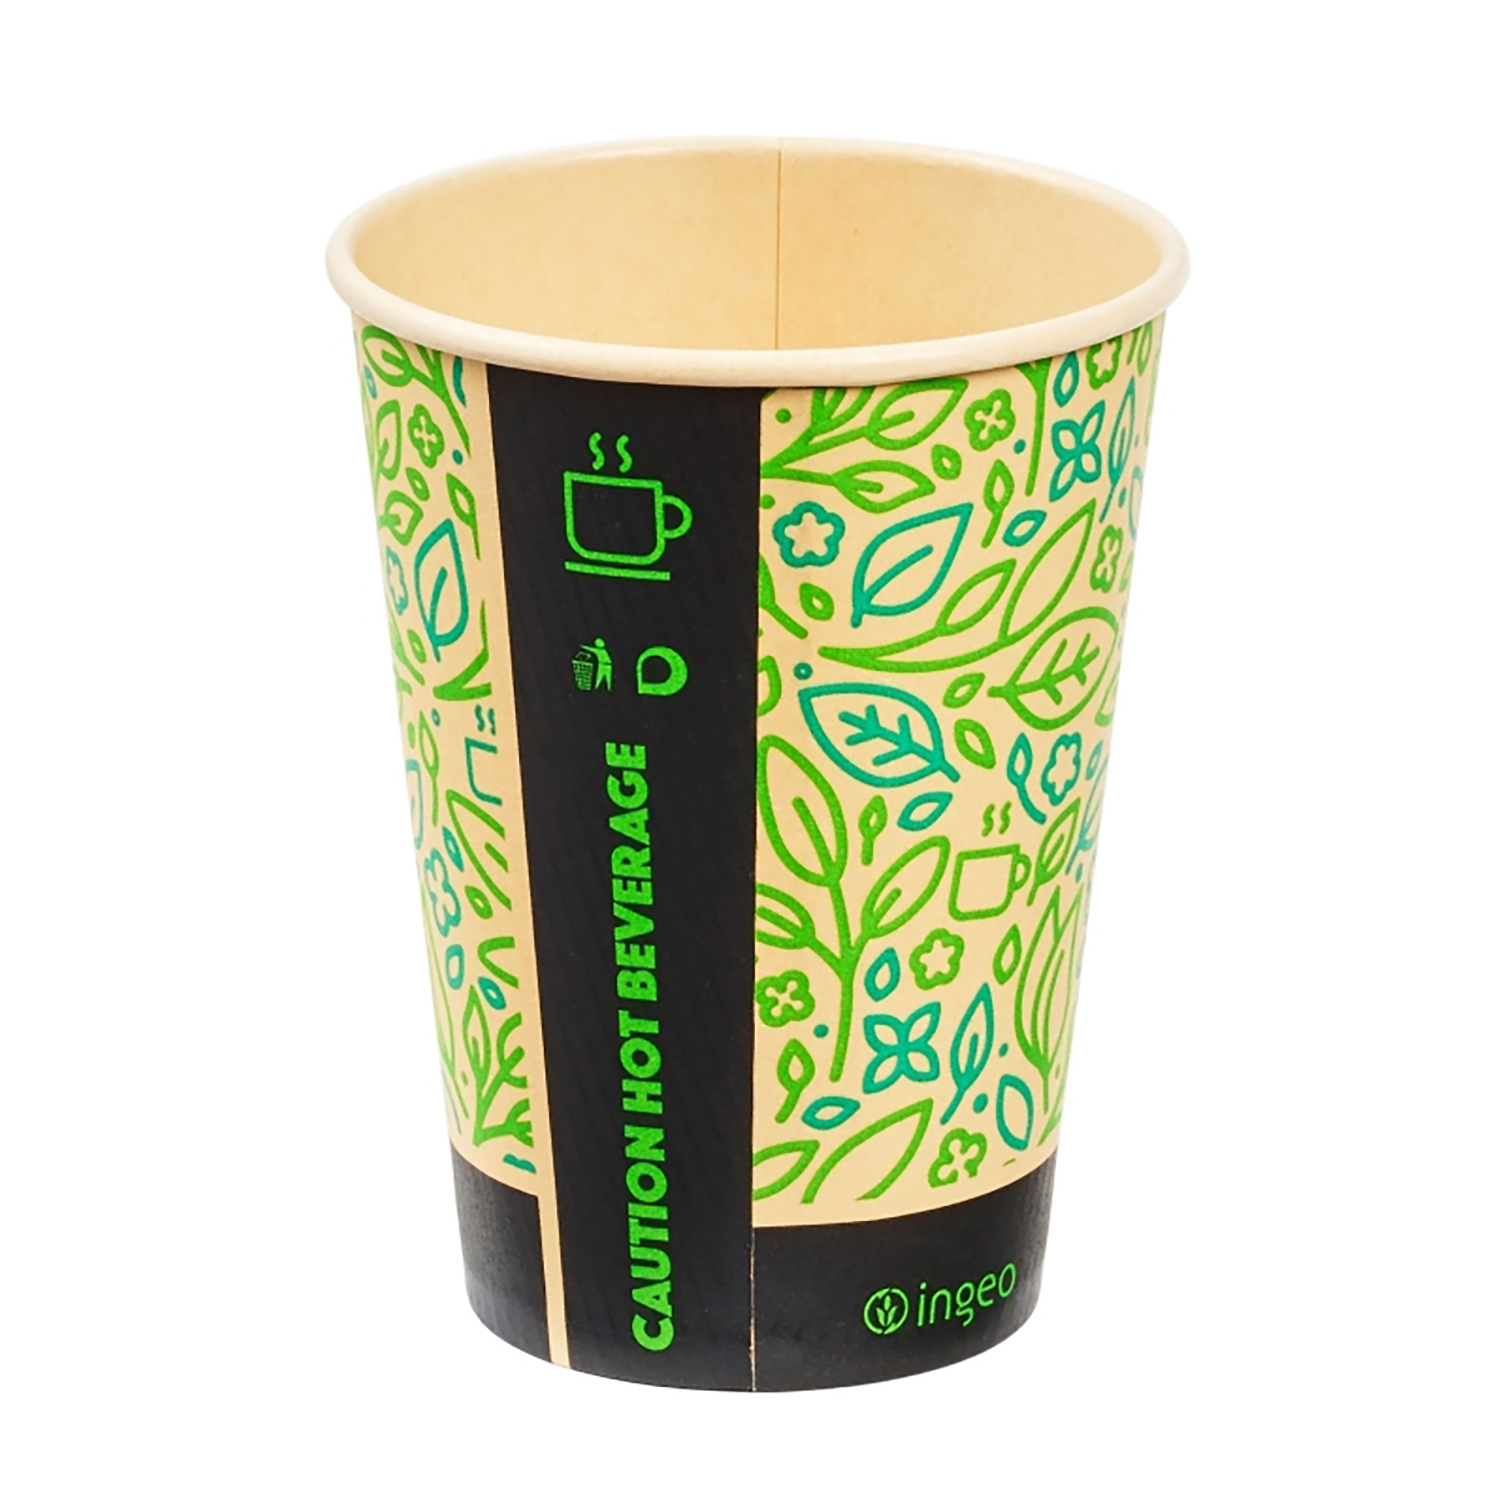 Ingeo Ultimate Eco Bamboo 8oz Biodegradable Disposable Cups Ref 0511223 Pack 25